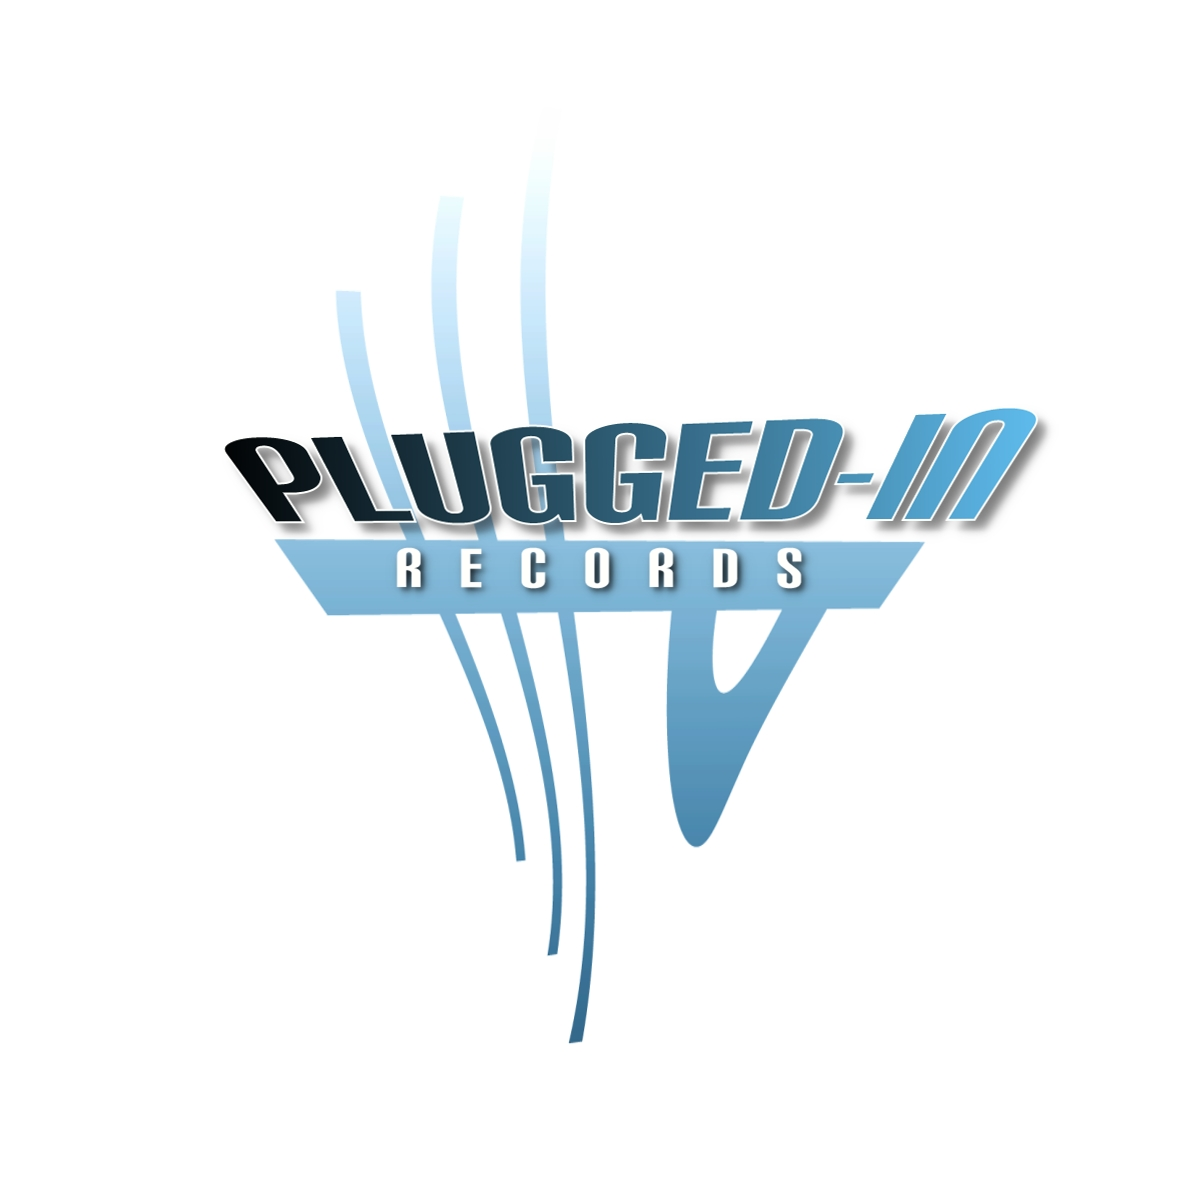 PluggedinRecords